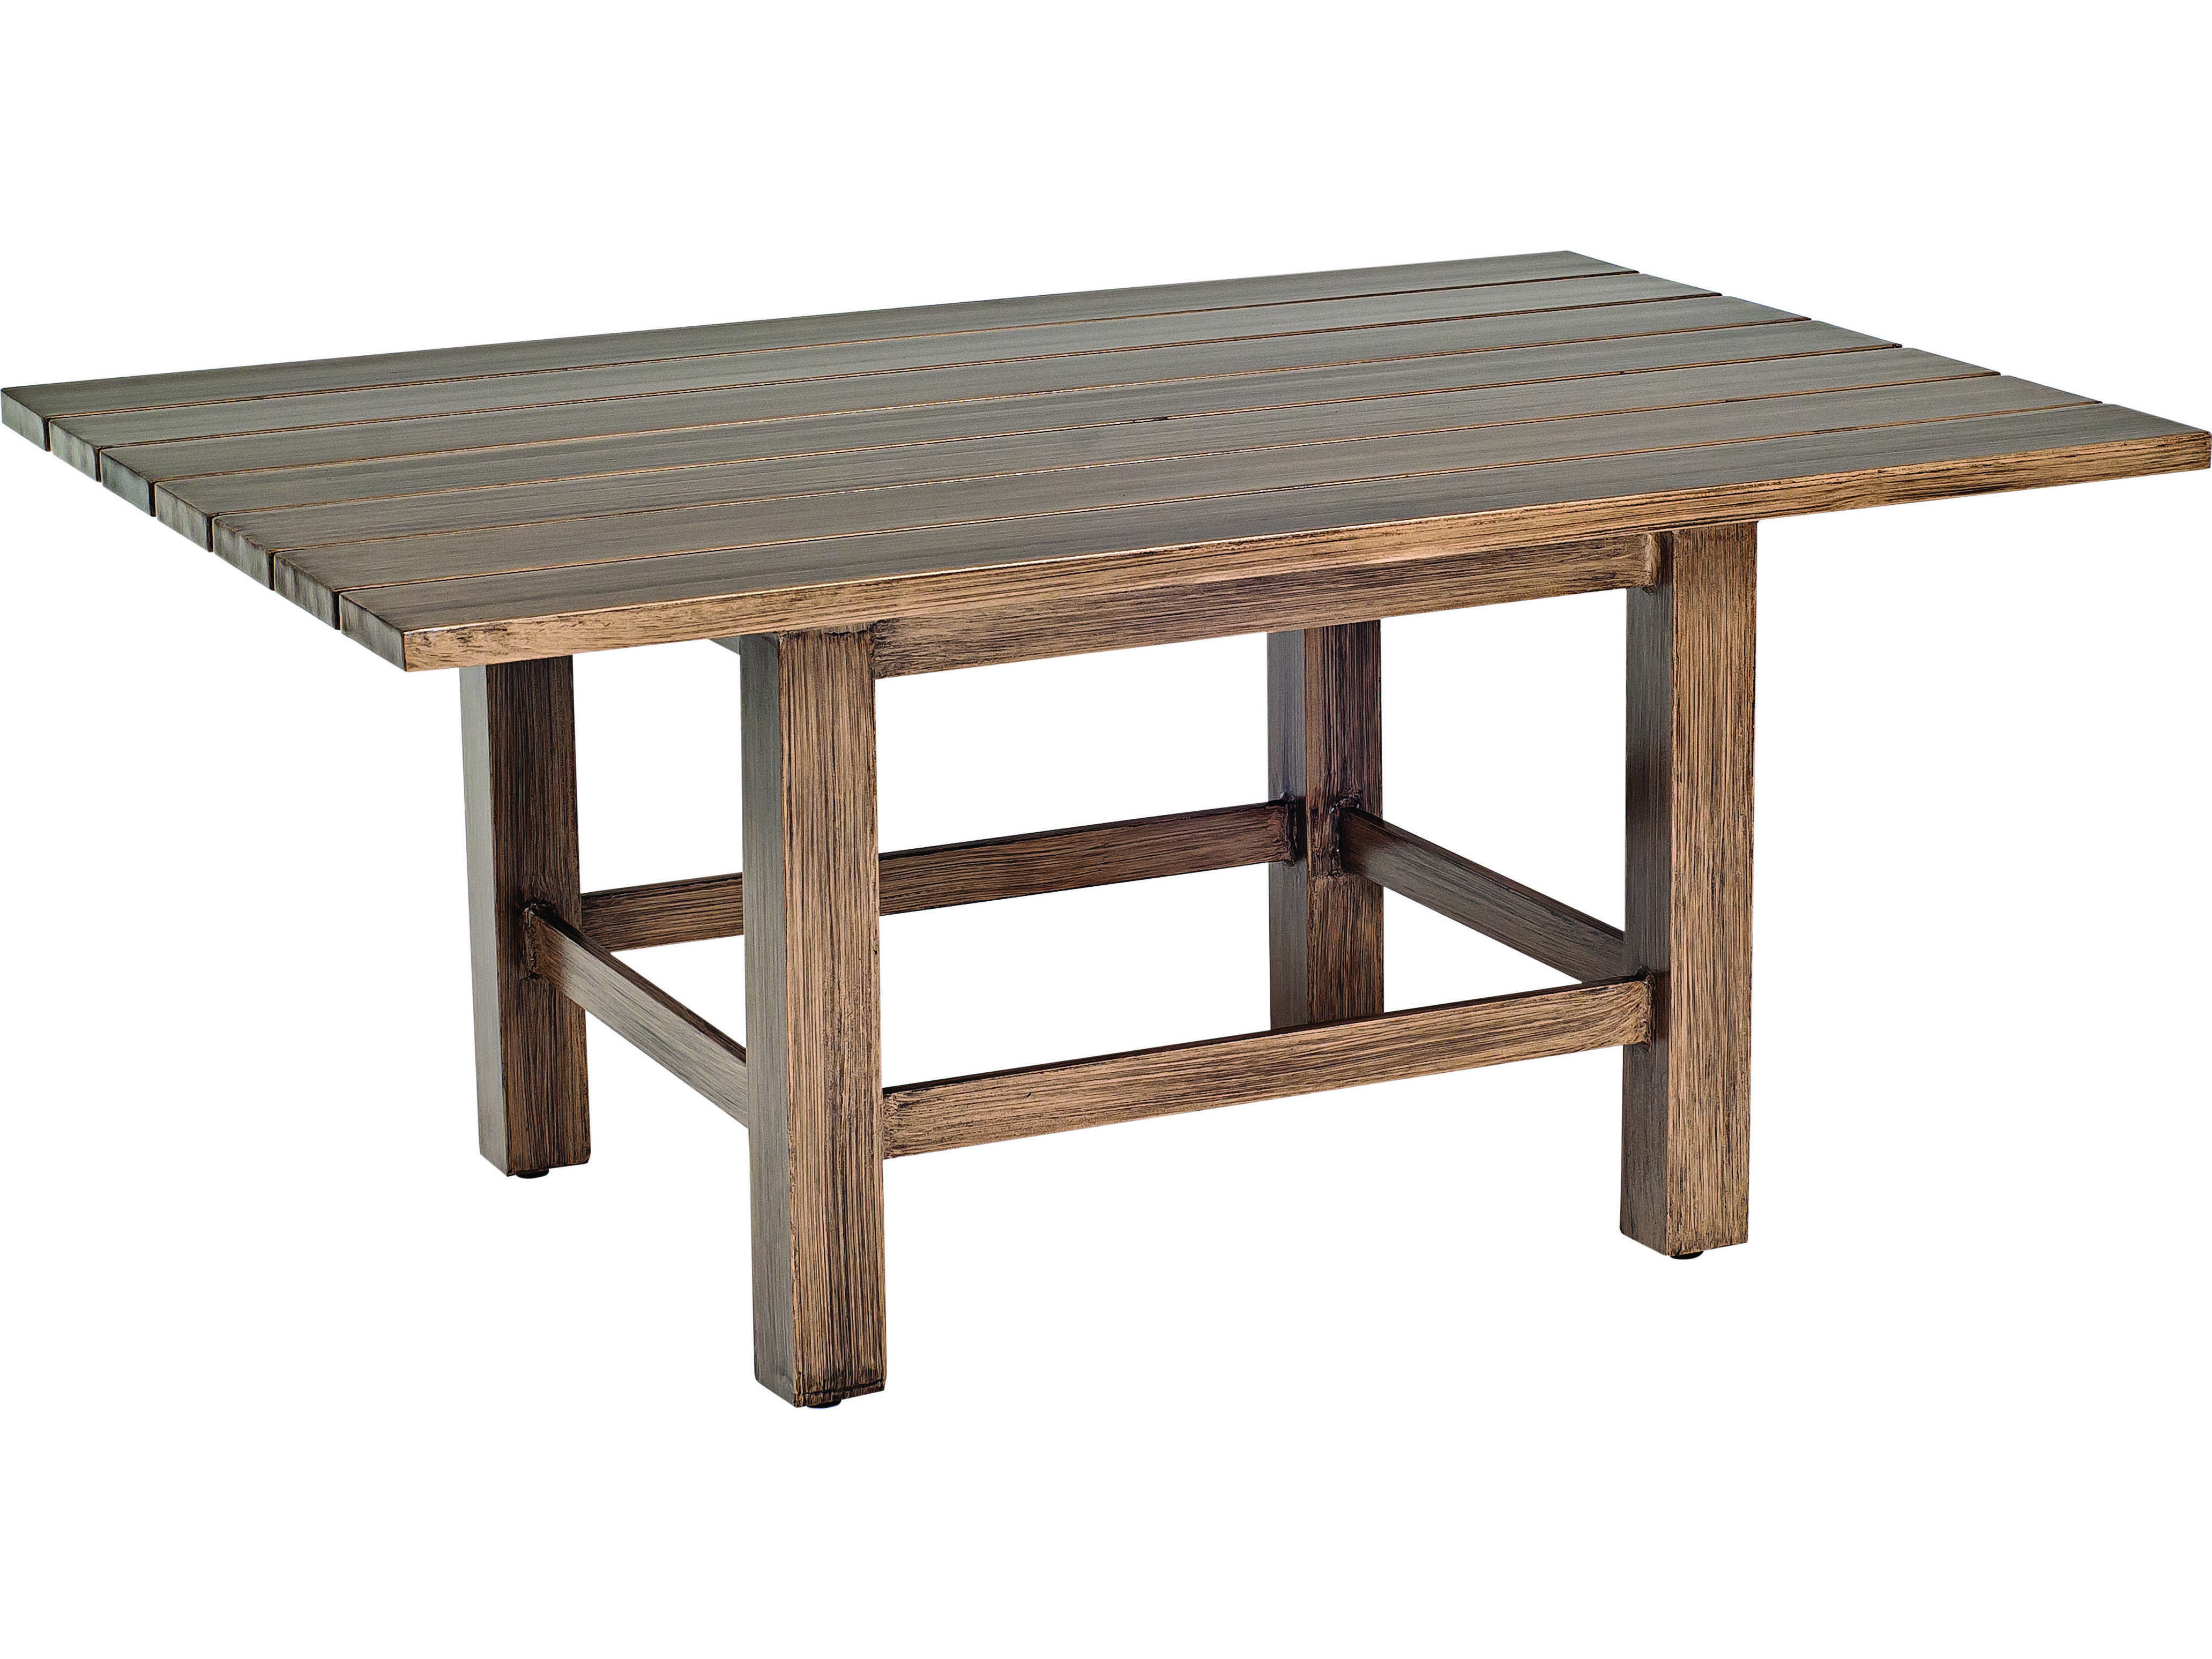 Woodard woodlands aluminum 48 x 36 rectangular coffee for 48 x 48 square coffee table